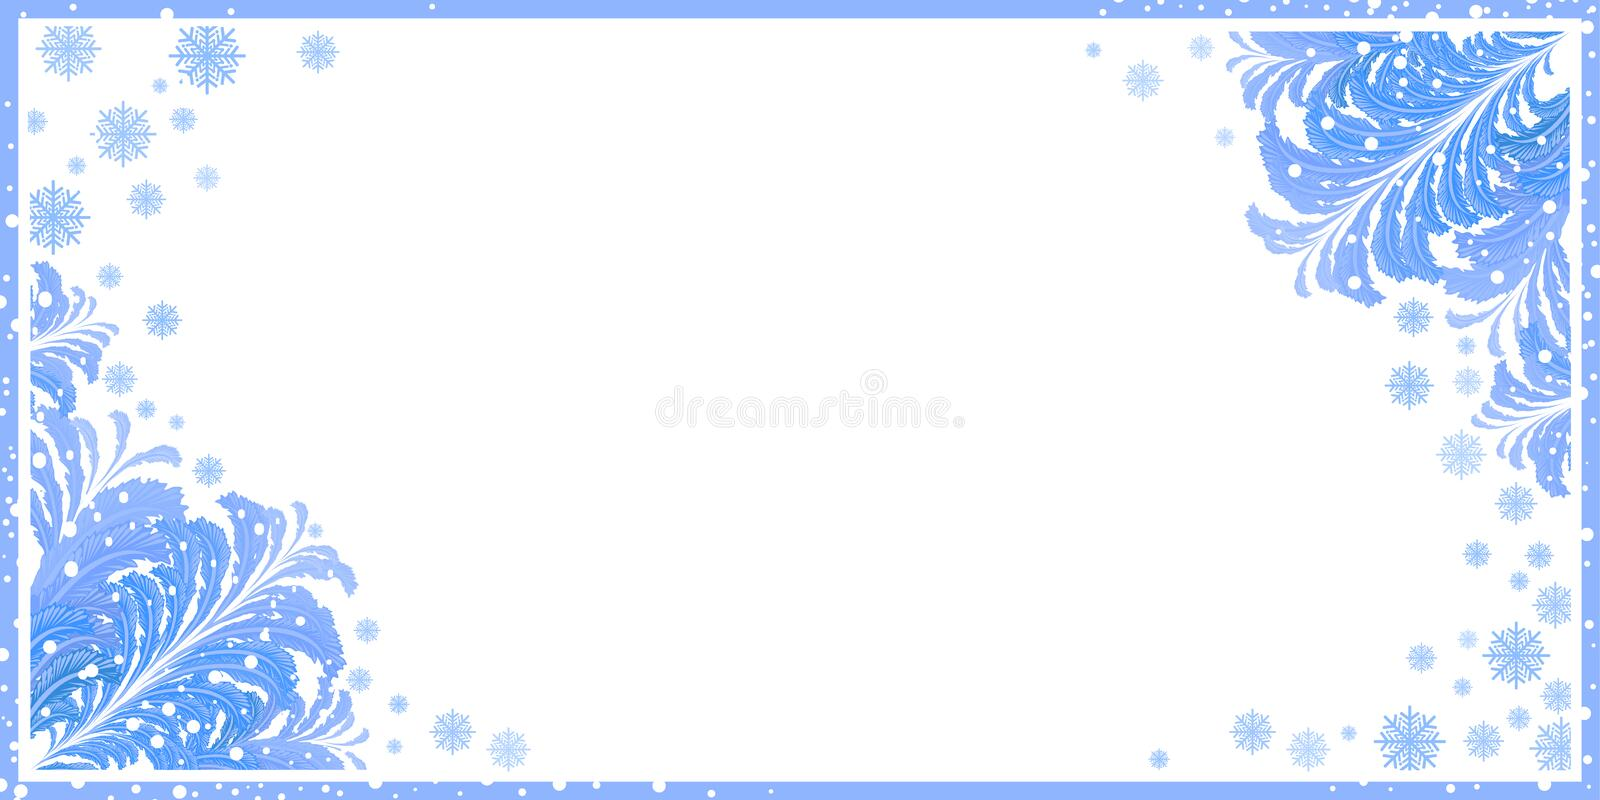 Winter frame with ice patterns stock illustration